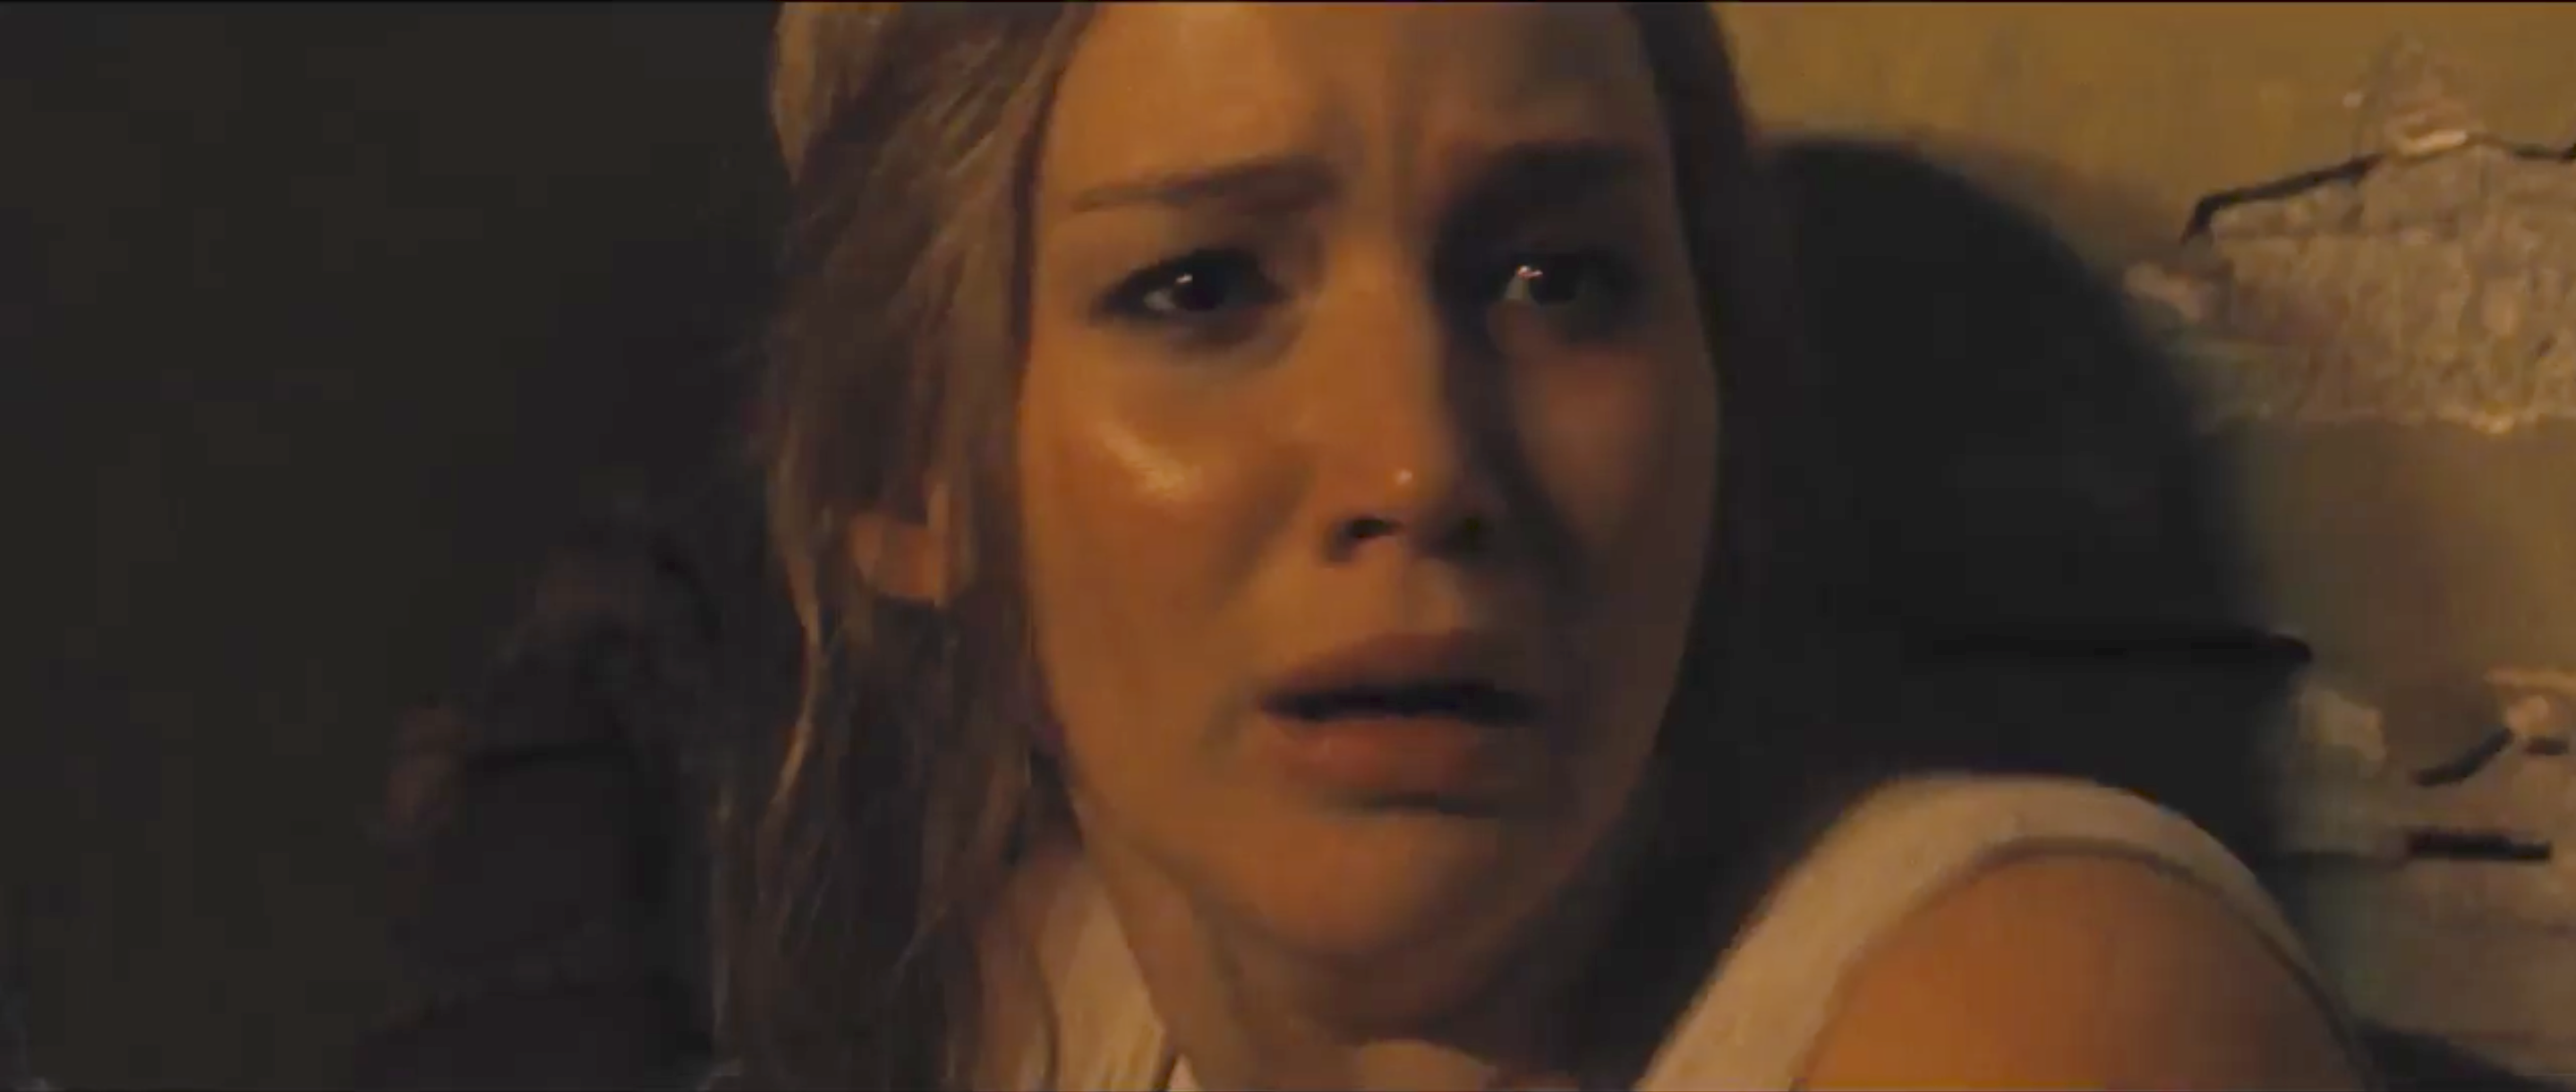 """Jennifer Lawrence's' mother!' Called """"Most Controversial Movie Since 'A Clockwork Orange'"""""""